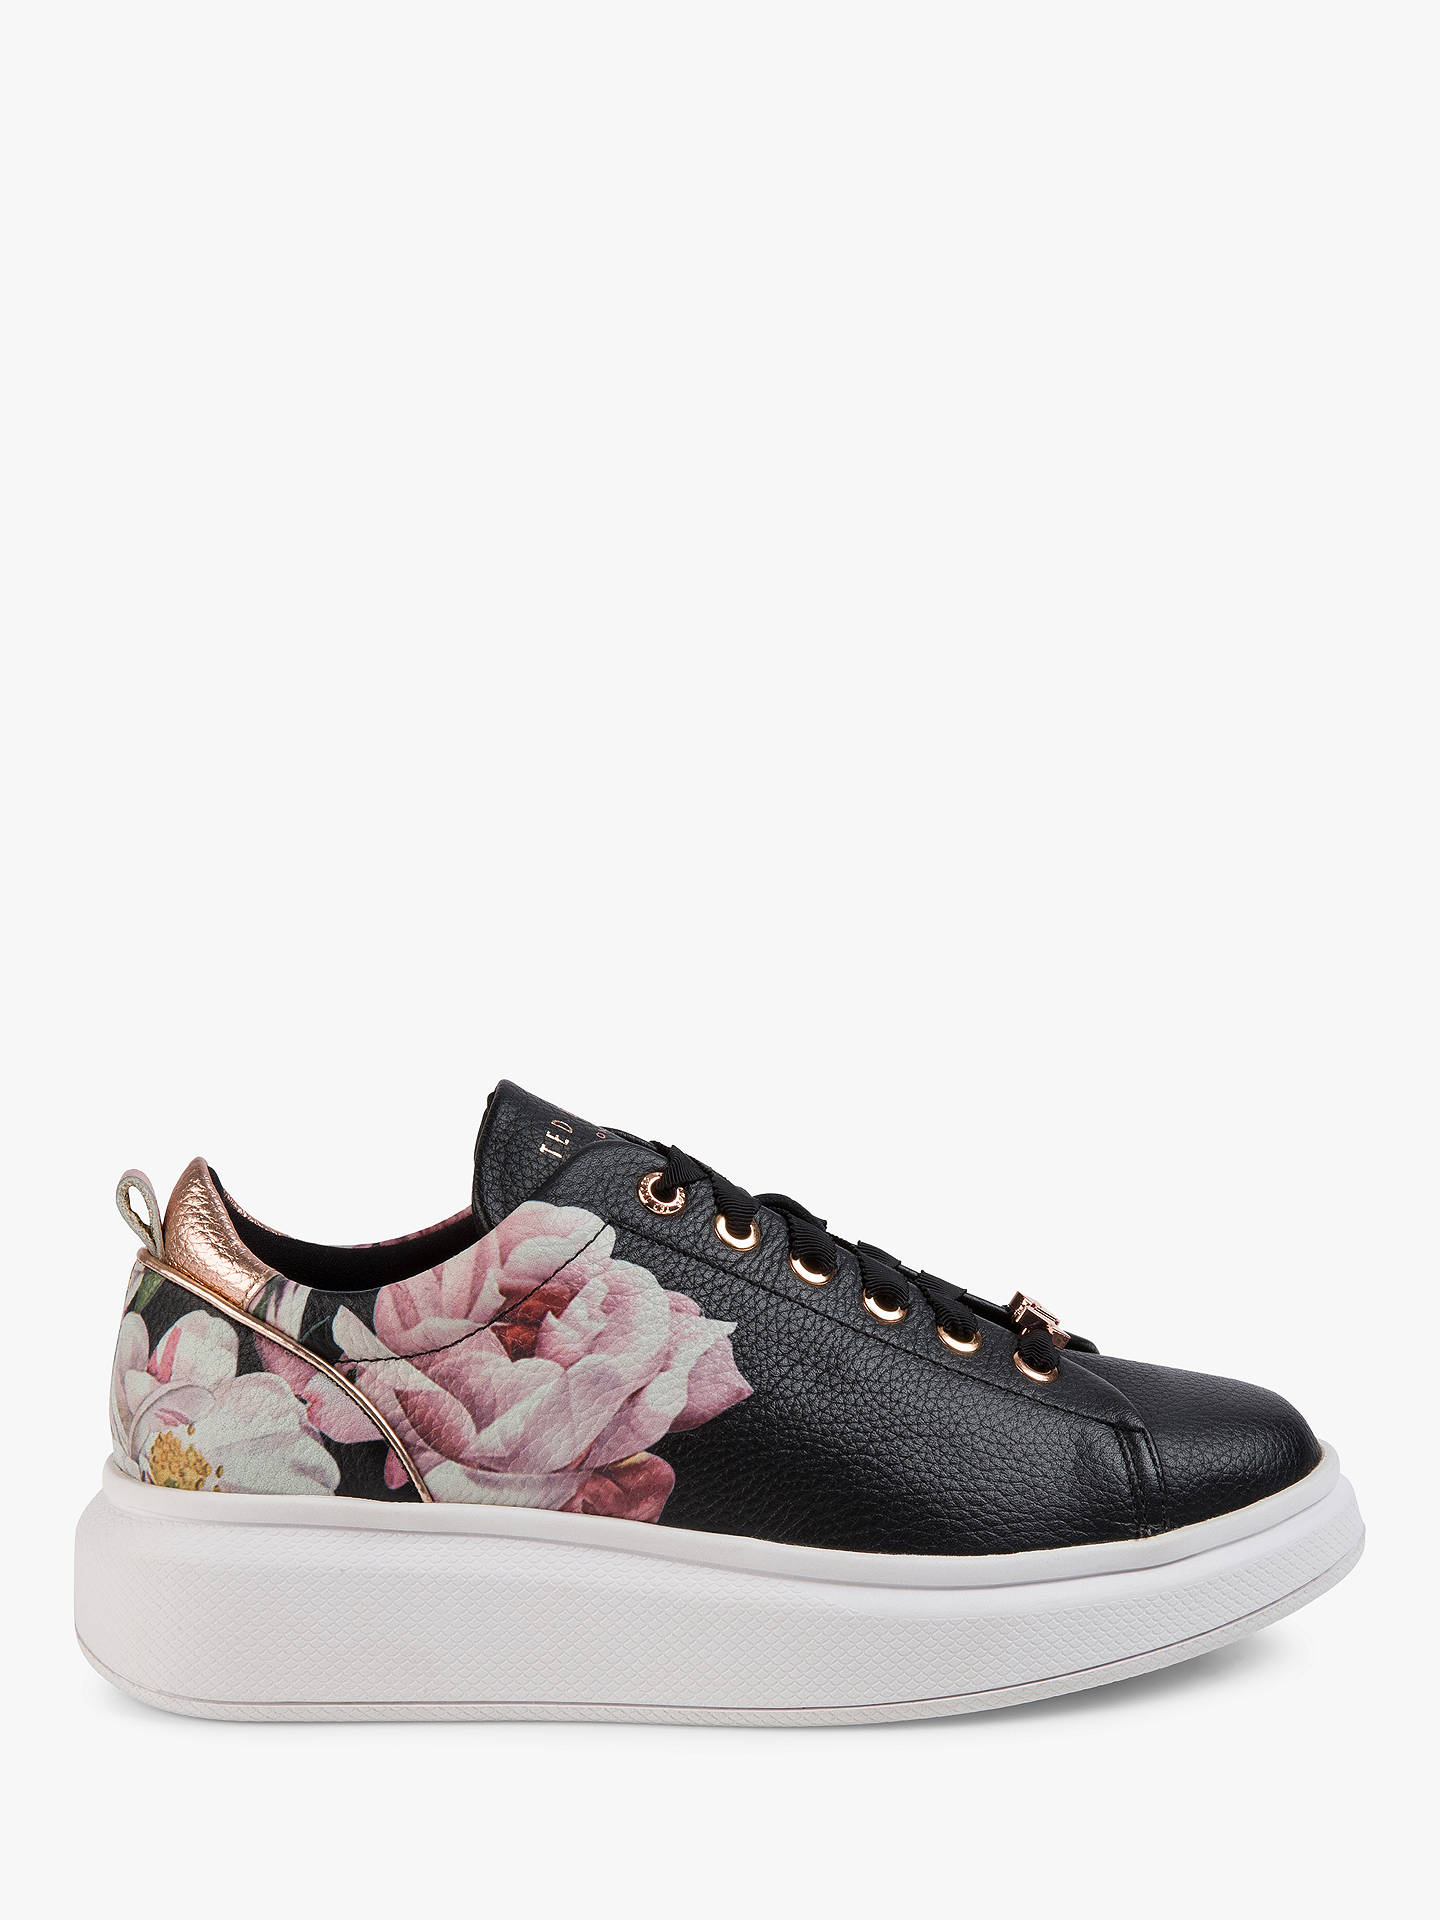 641f02dac7924 Buy Ted Baker Ailbe 2 Iguazu Leather Trainers